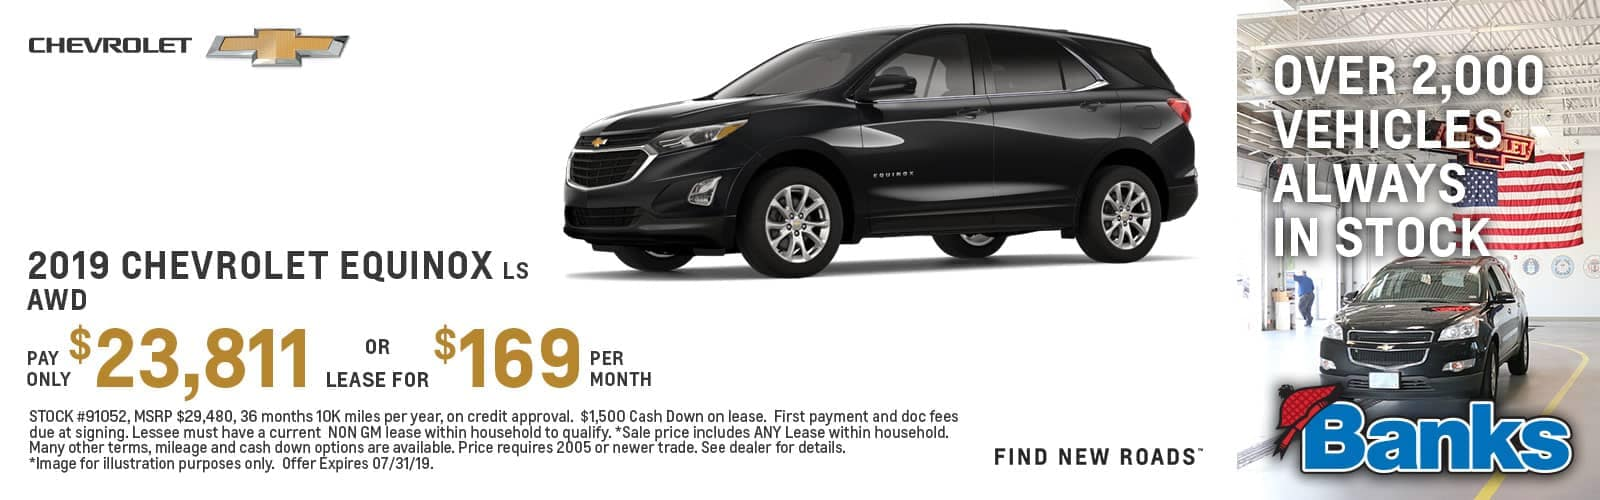 Banner of Chevrolet Equinox for July Special